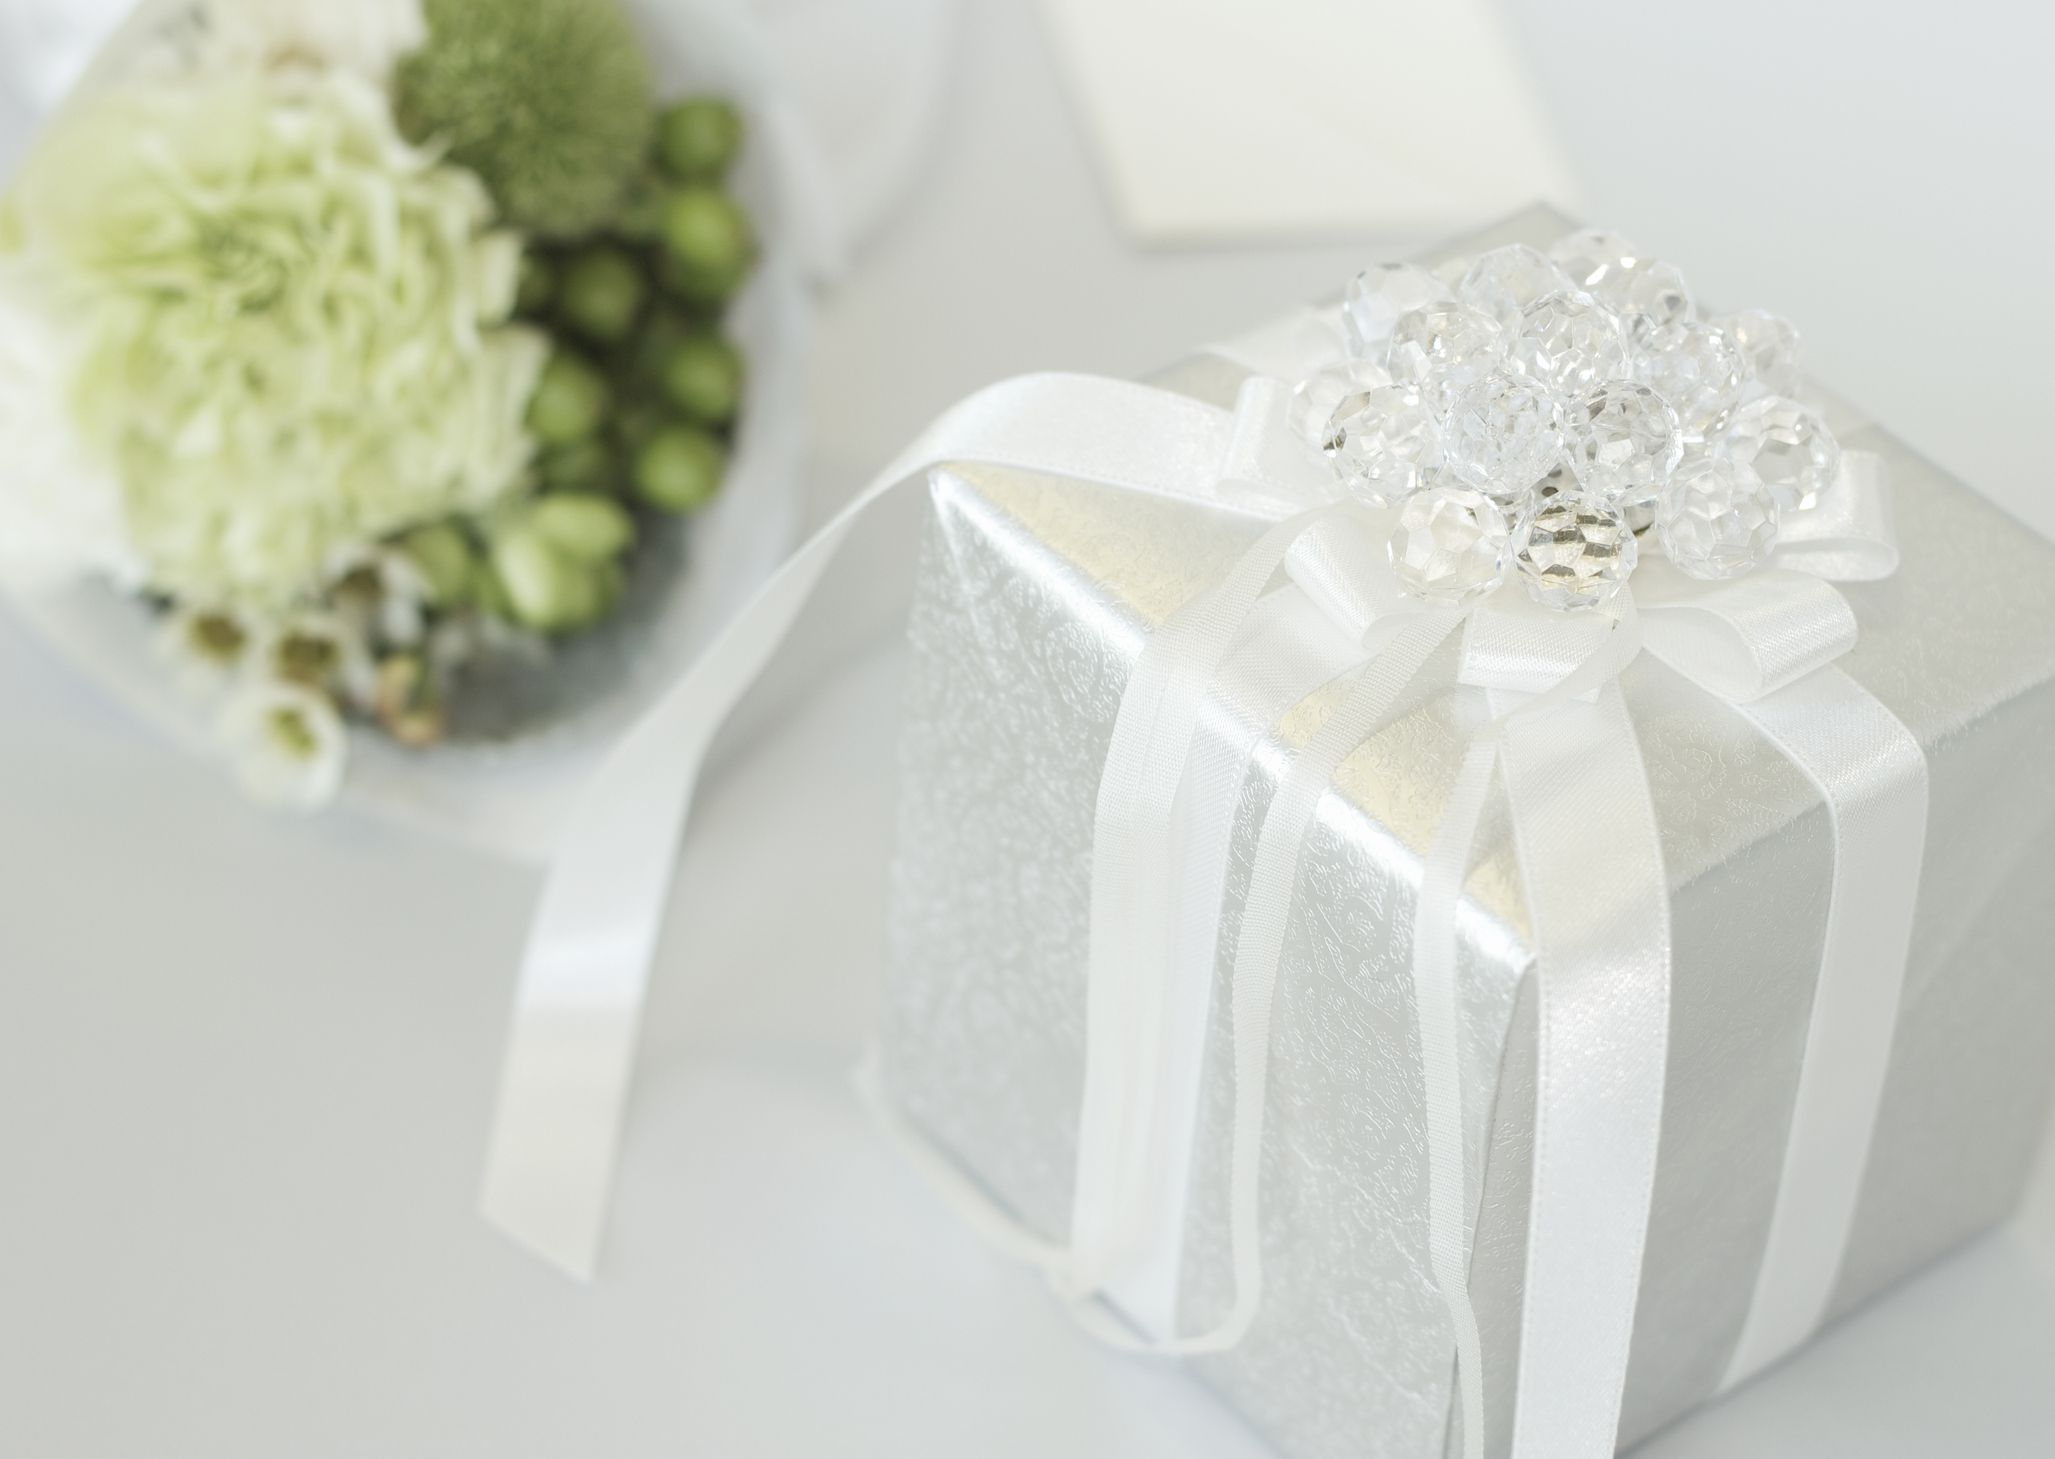 Wedding Gifts For Second Marriages Etiquette: Creative And Personal Wedding Gift Ideas